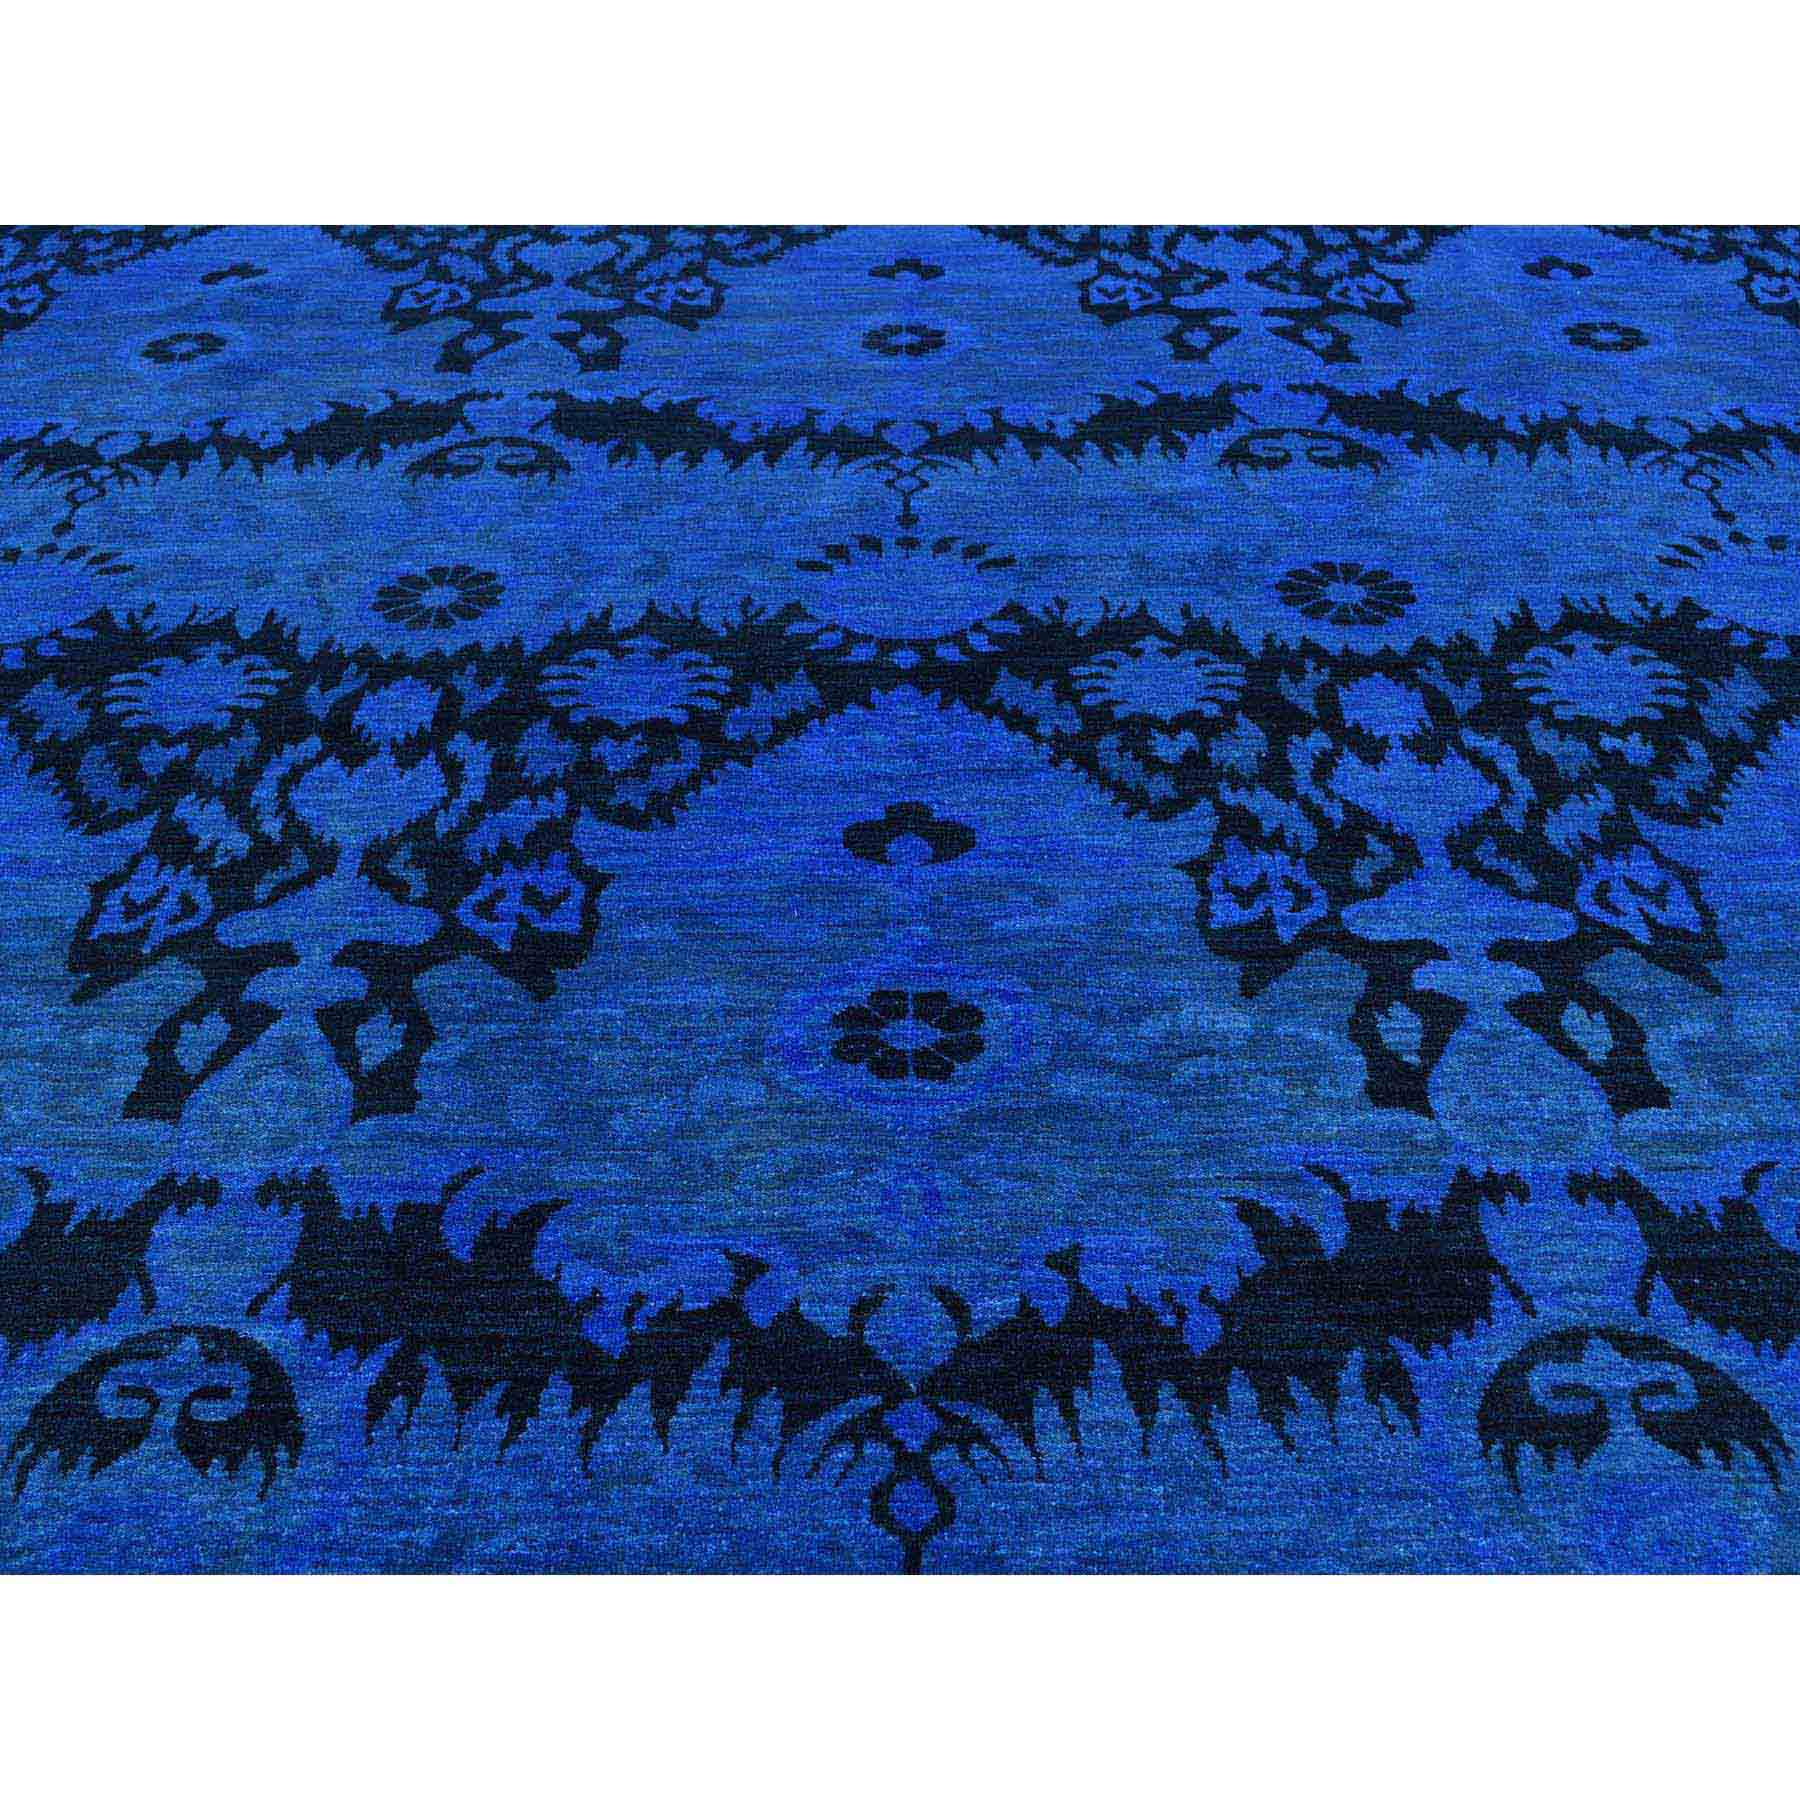 Overdyed-Vintage-Hand-Knotted-Rug-172535